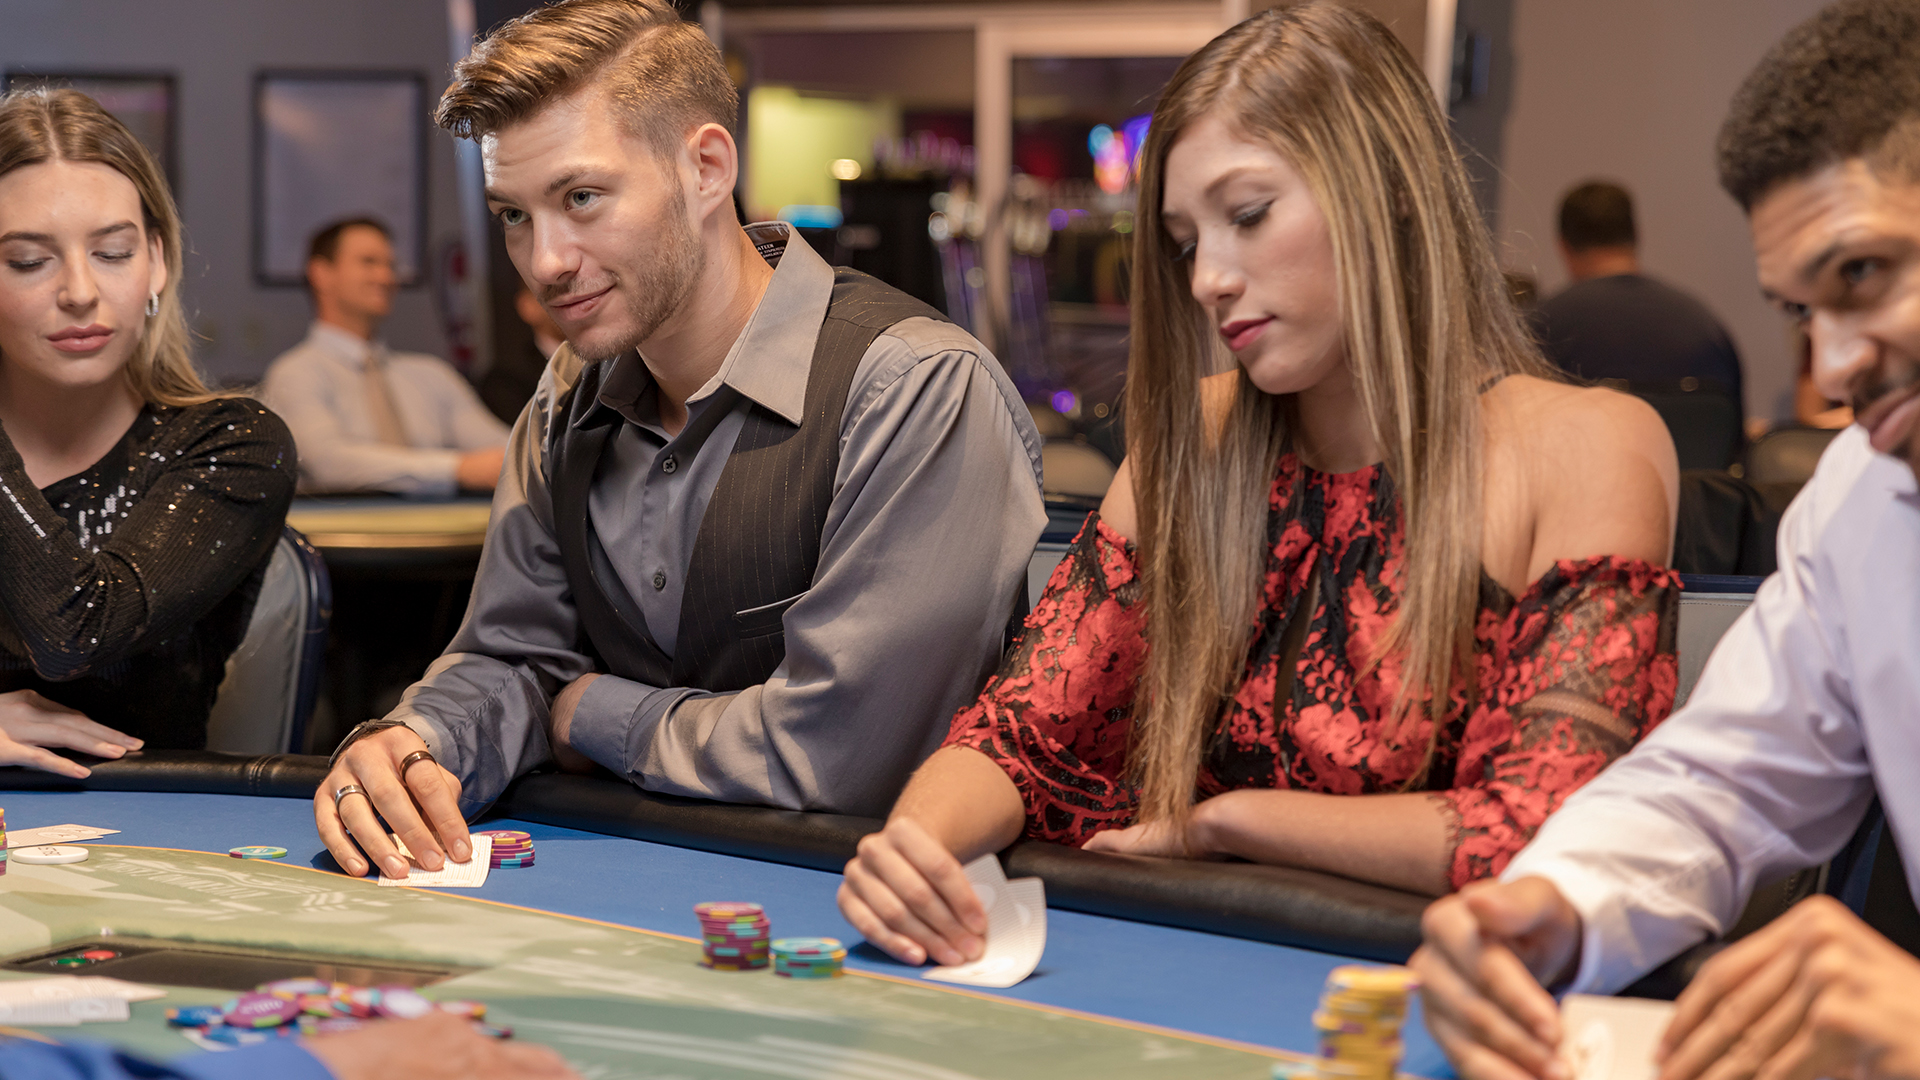 Riverwind's Unwritten Rules of Poker